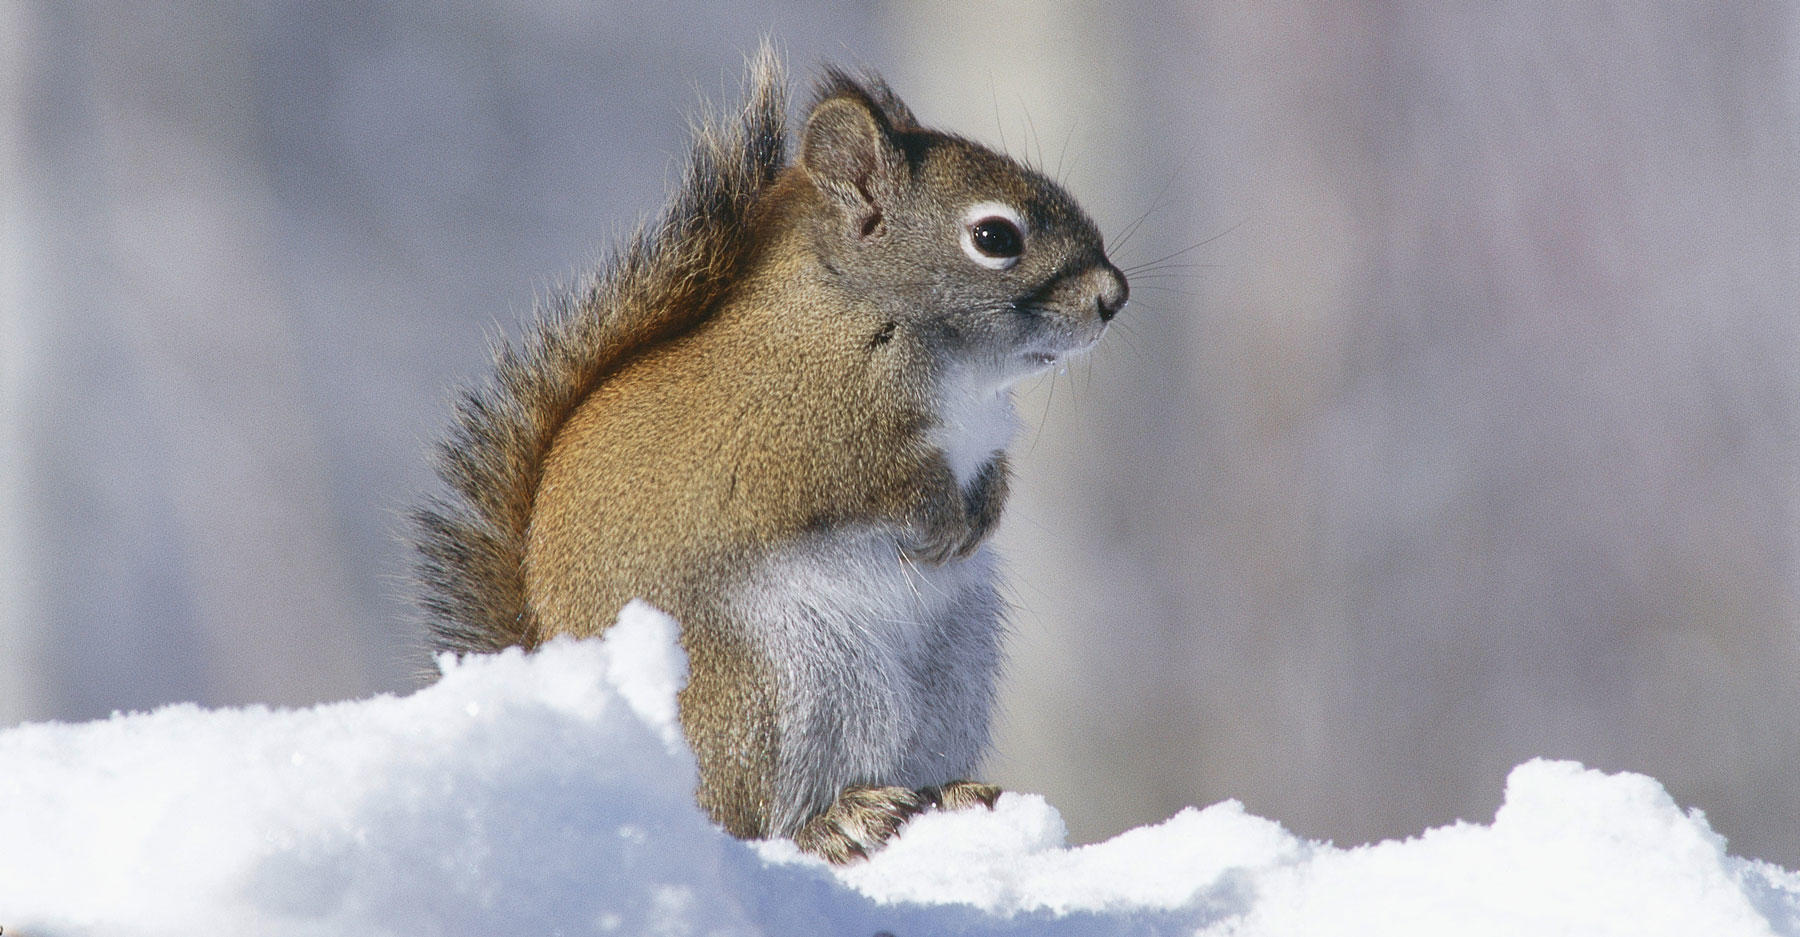 Red squirrel sits on snowy ground. Tamiasciurus hudsonscus.